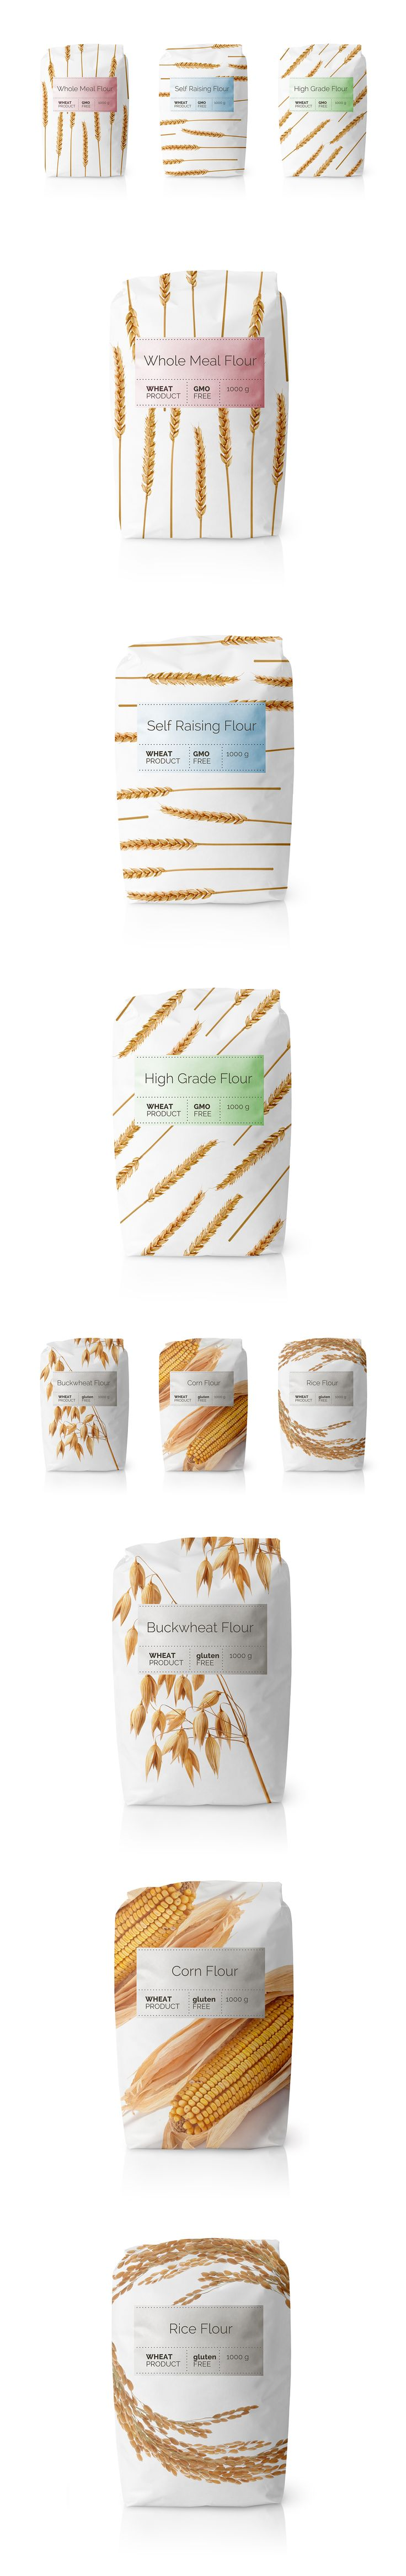 packaging / Flour GMO Free Whole Whet Products. Minimalistic graphics with simple label easing the variations of packaging.